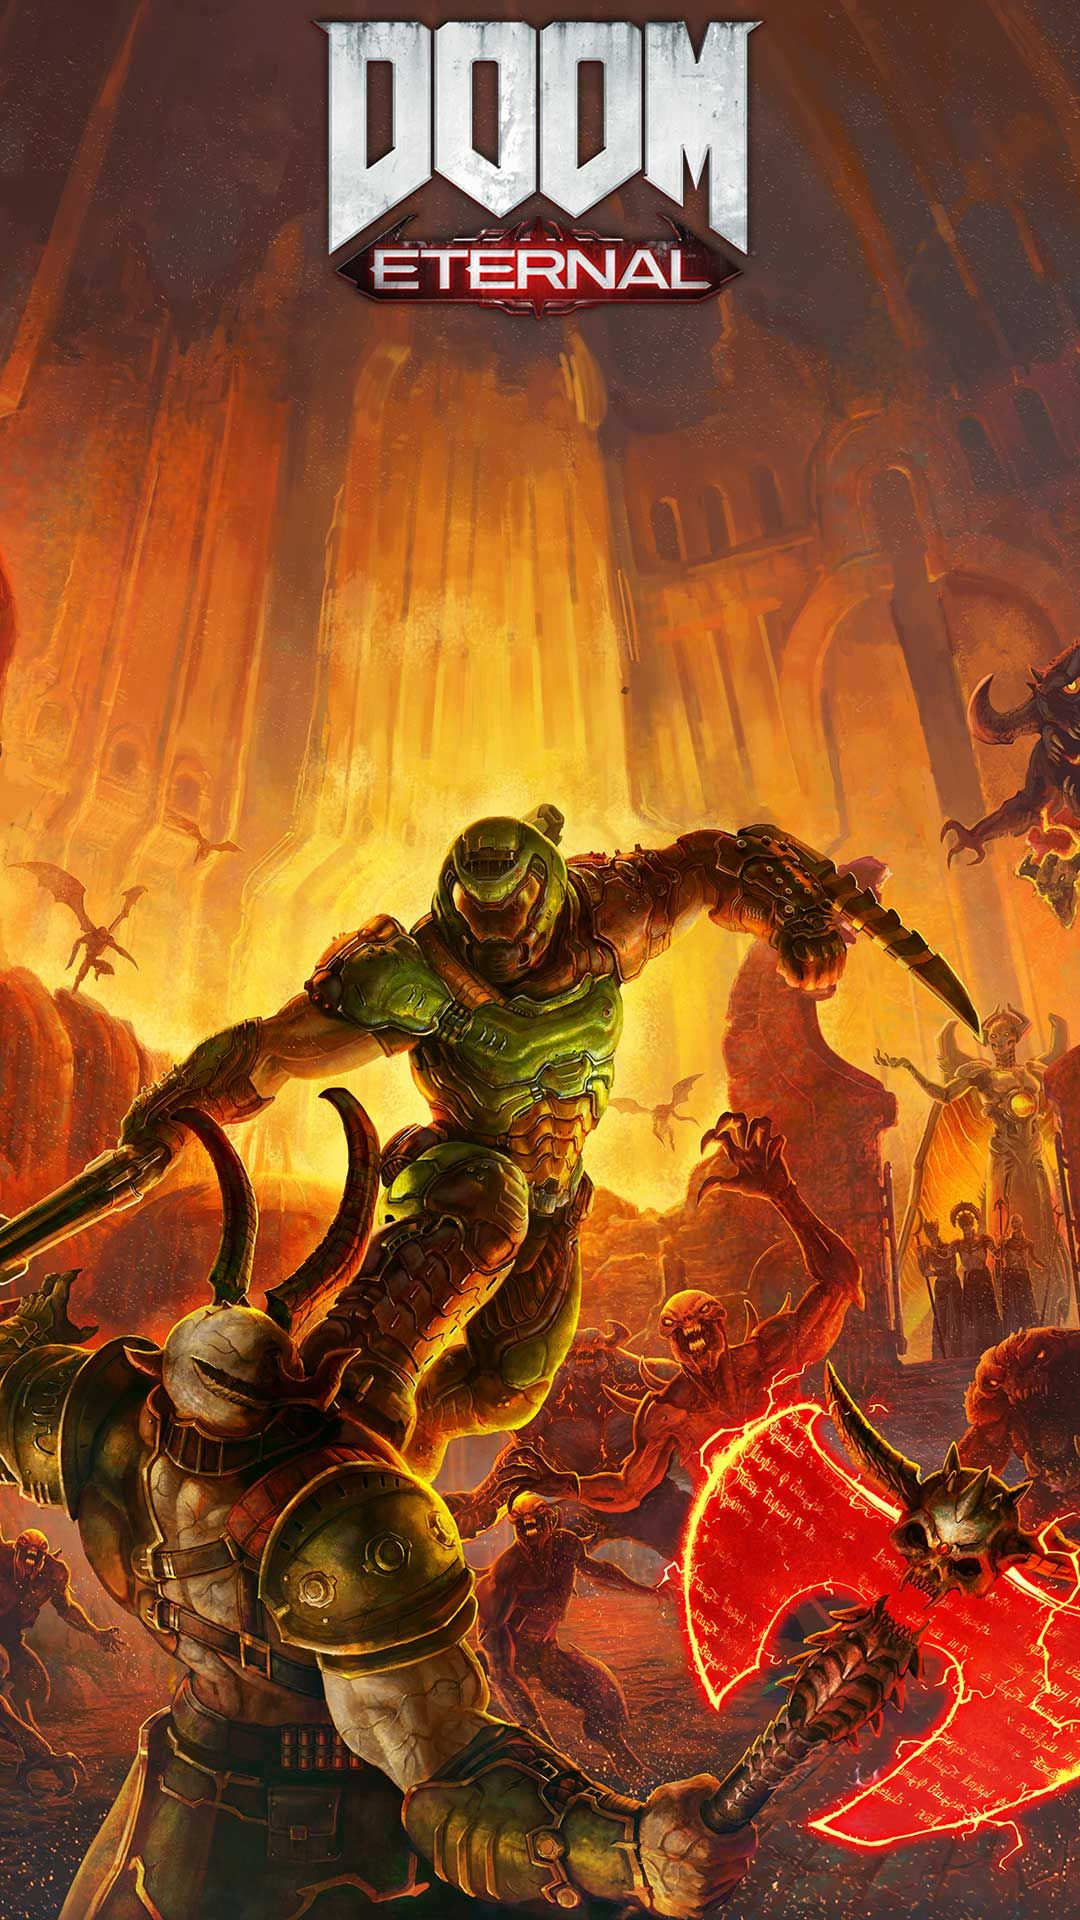 Doom Eternal Wallpaper Hd Phone Backgrounds Game Logo Art Monsters On Iphone Android Lock Screen In 2020 Hd Phone Backgrounds Doom Gaming Wallpapers